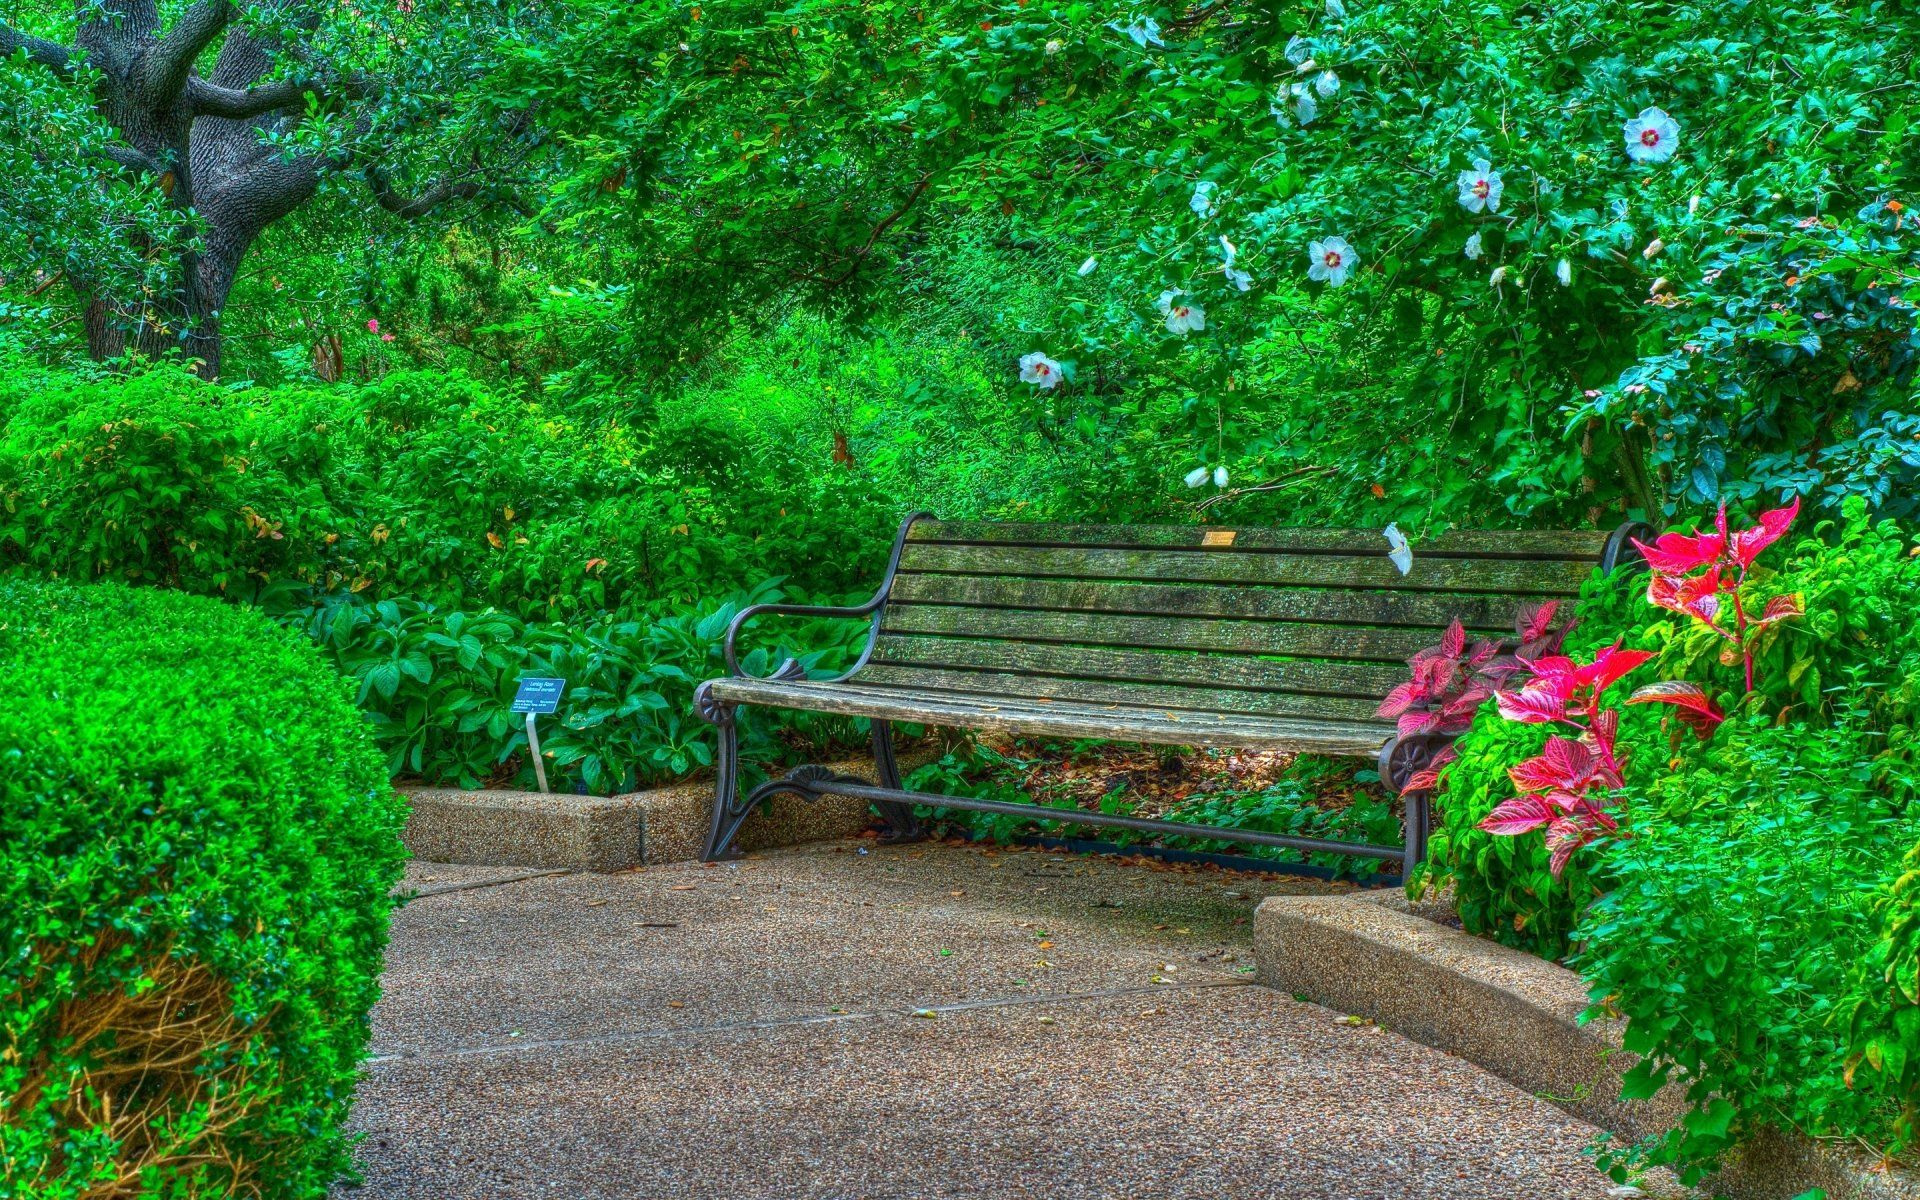 2880x1800 Bench In Spring Park Wallpaper Background Image View Download Comment And Rate Wallpaper A Background Images Hdr Pictures Blur Photo Background